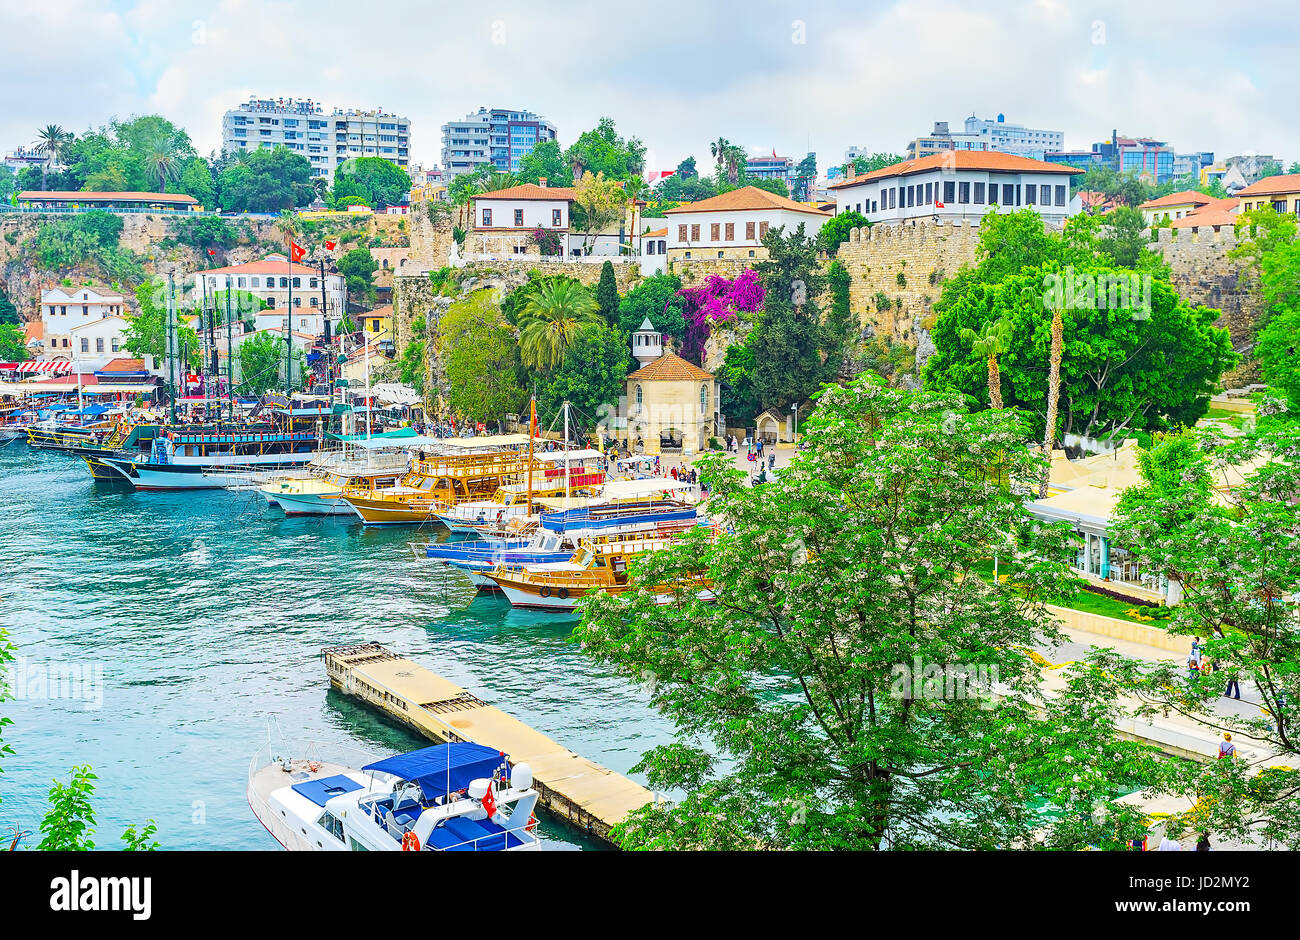 The view of old port with the Iskele Mosque, located next to the old fortress wall, Antalya, Turkey. - Stock Image